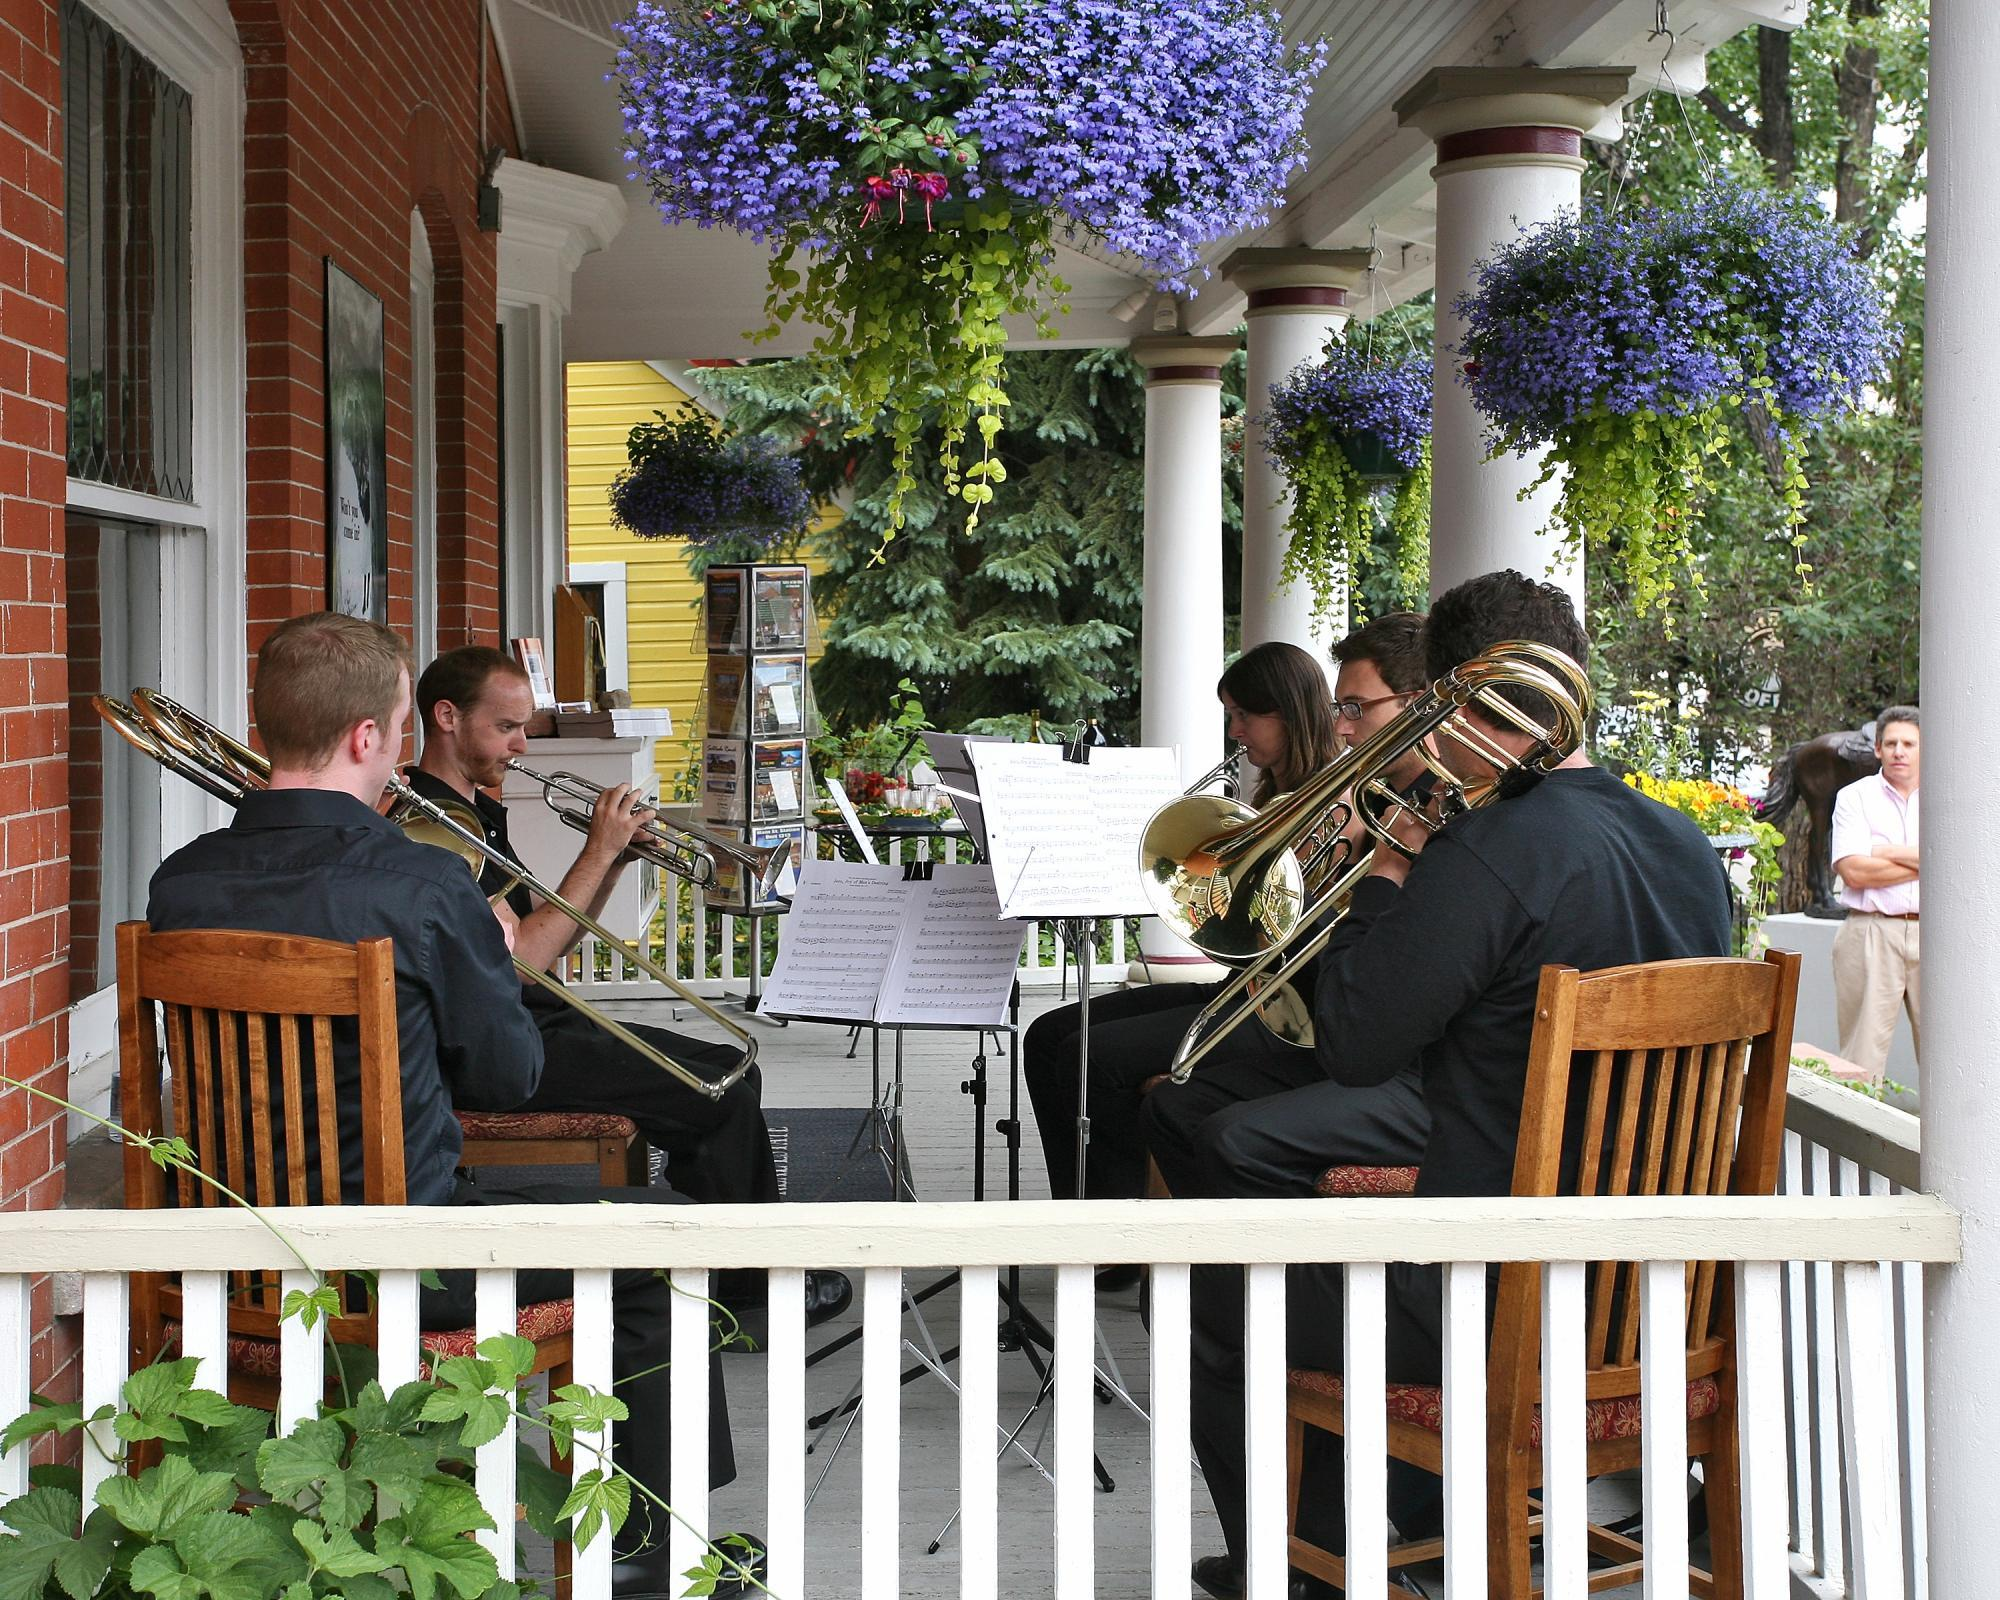 Breck Associates hosts a series of concerts on the porch of their Main Street office